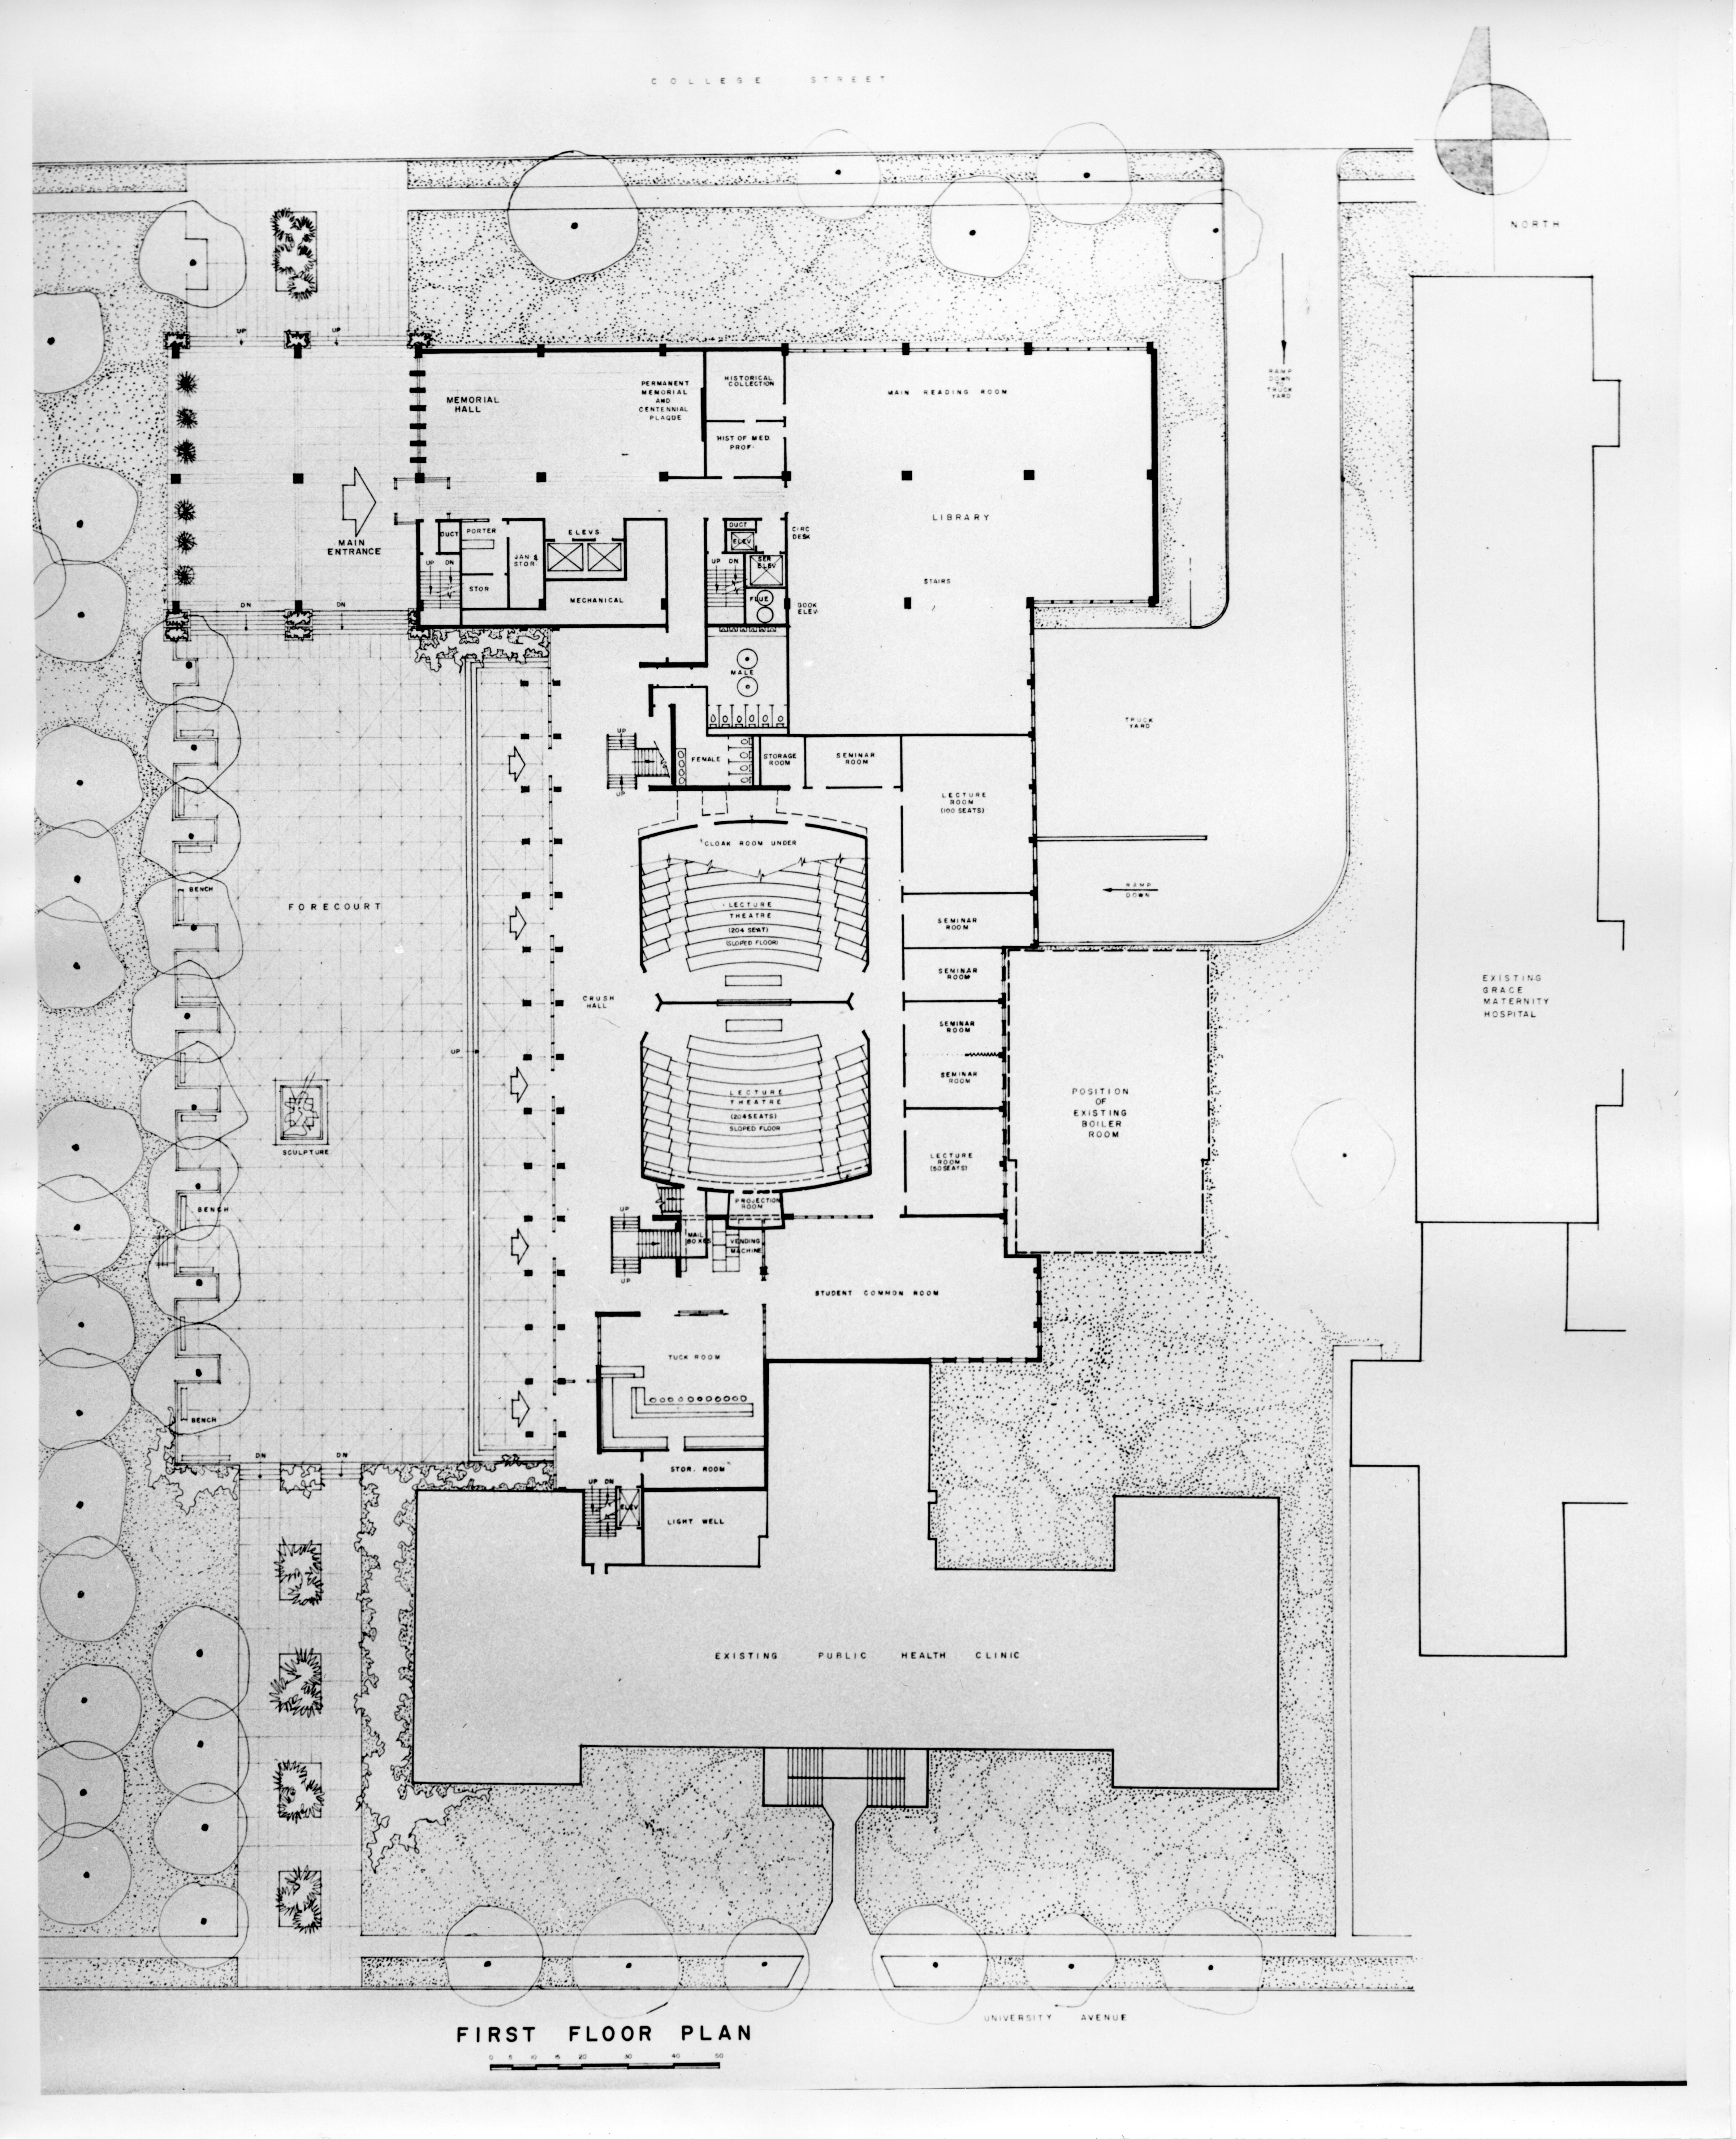 Drawing of the layout of the first floor of the Sir Charles